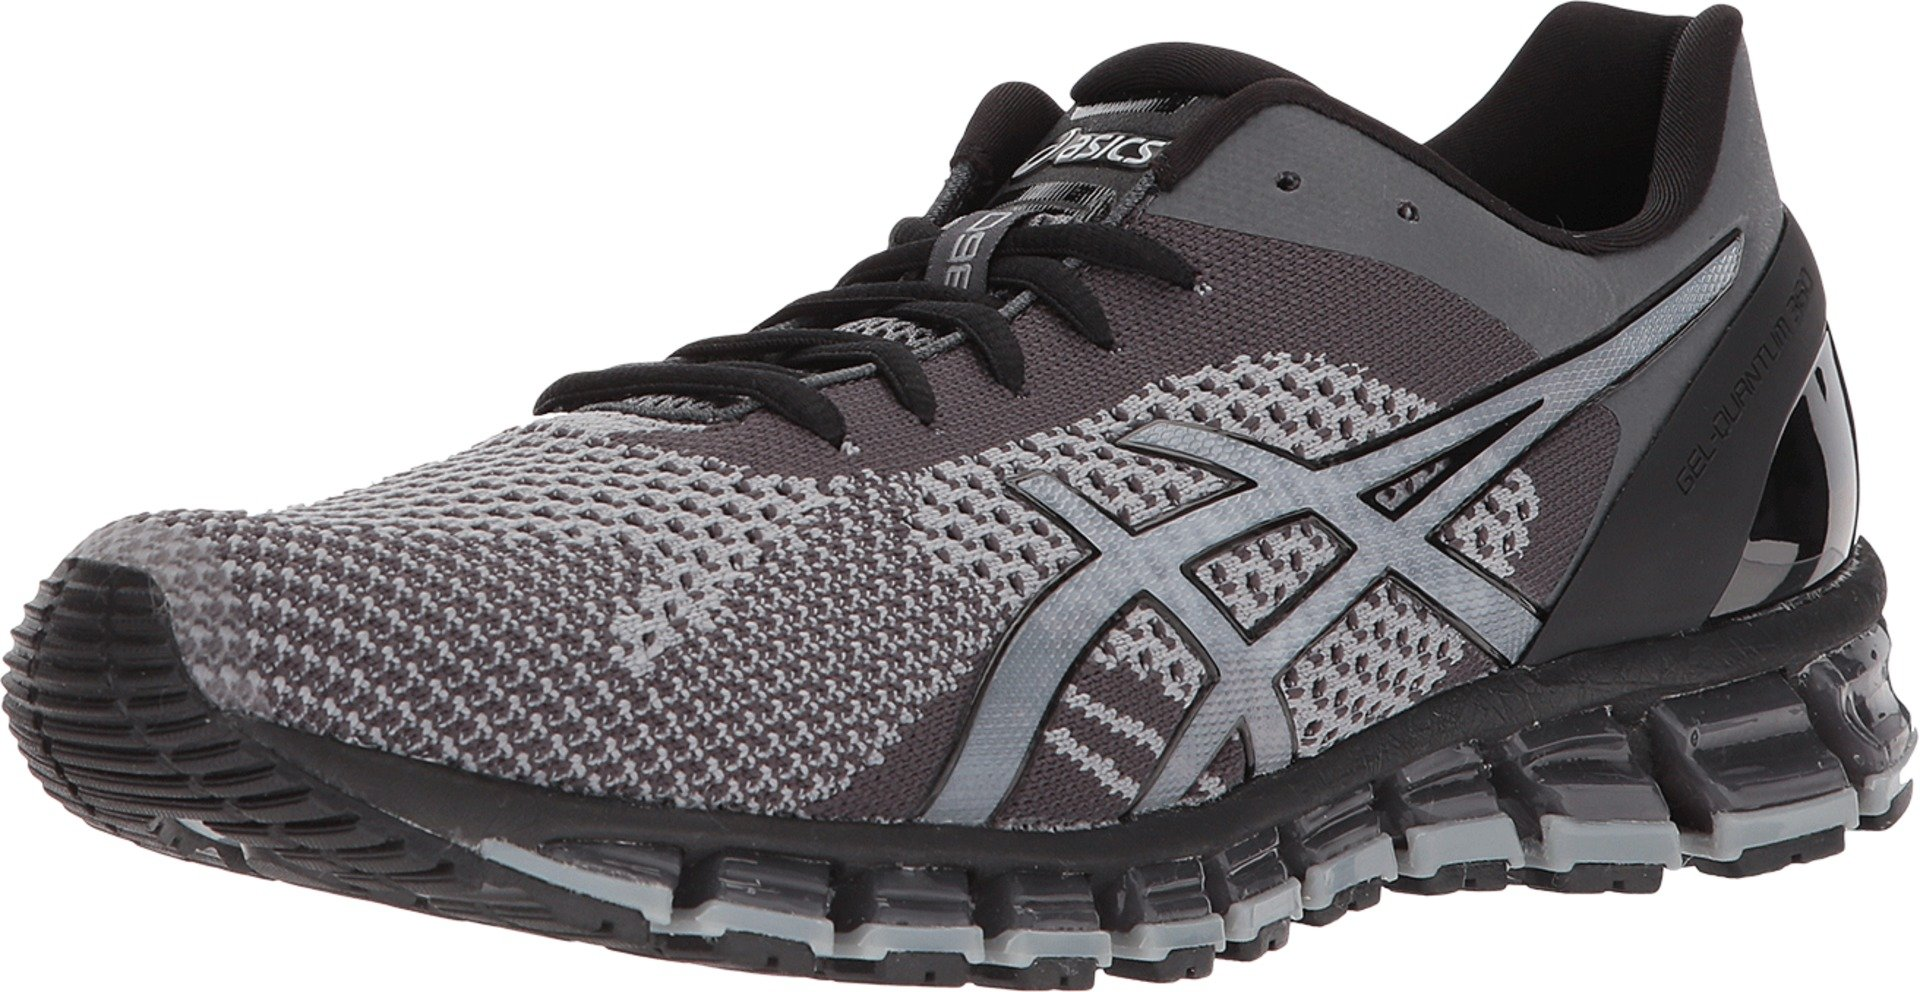 newest 8a510 122ff ASICS Men's Gel-Quantum 360 Knit Running Shoes, Mid Grey/Carbon/Black, 11.5  M US